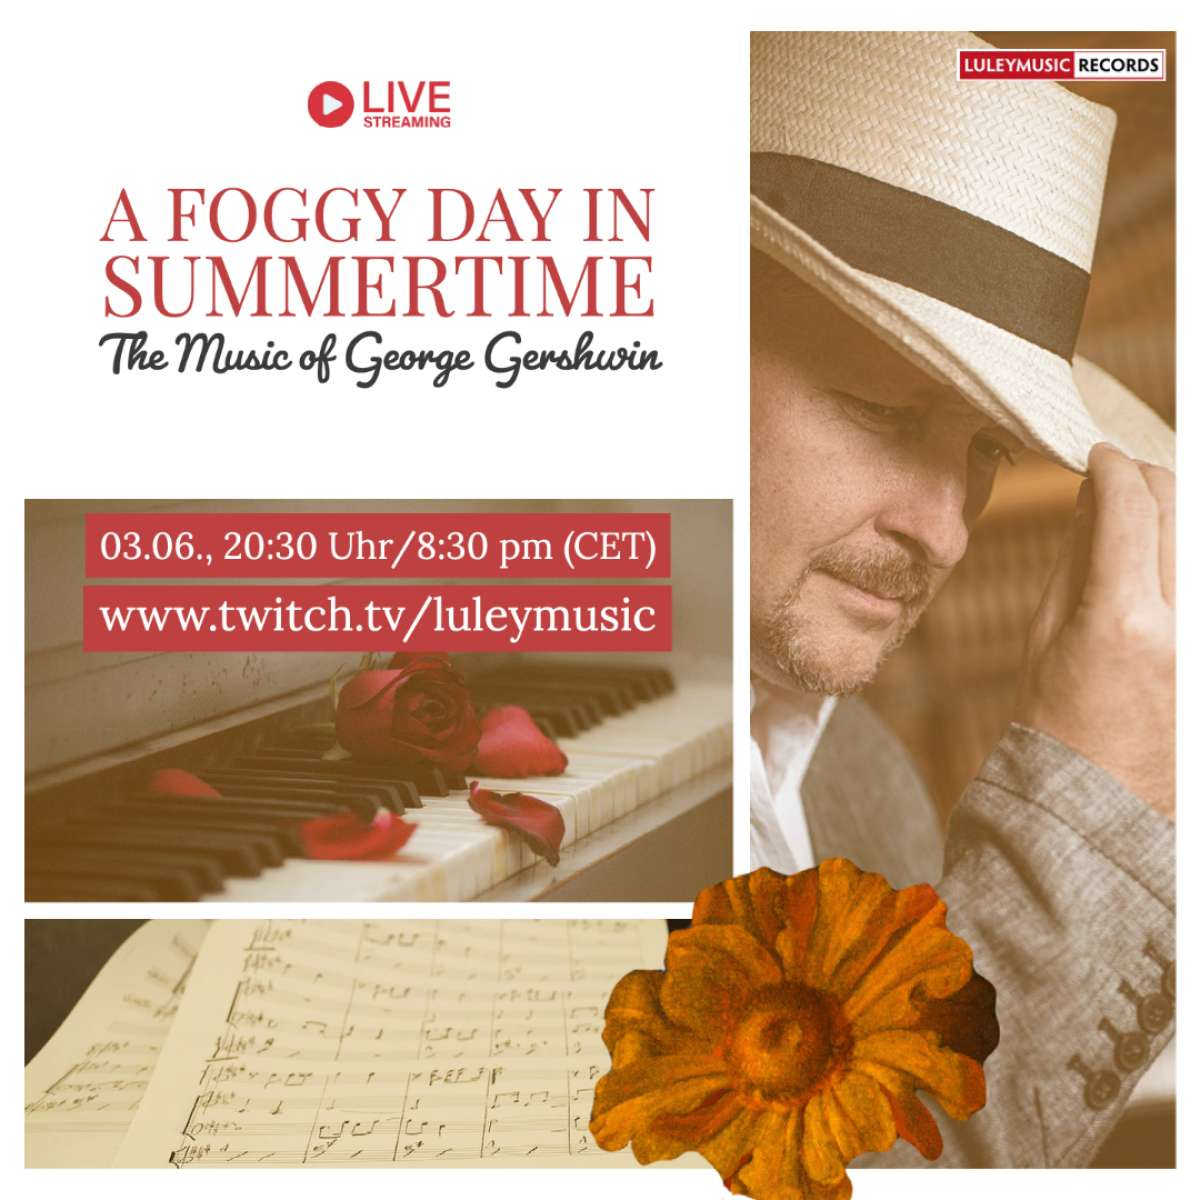 A Foggy Day In Summertime - The Music of George Gershwin